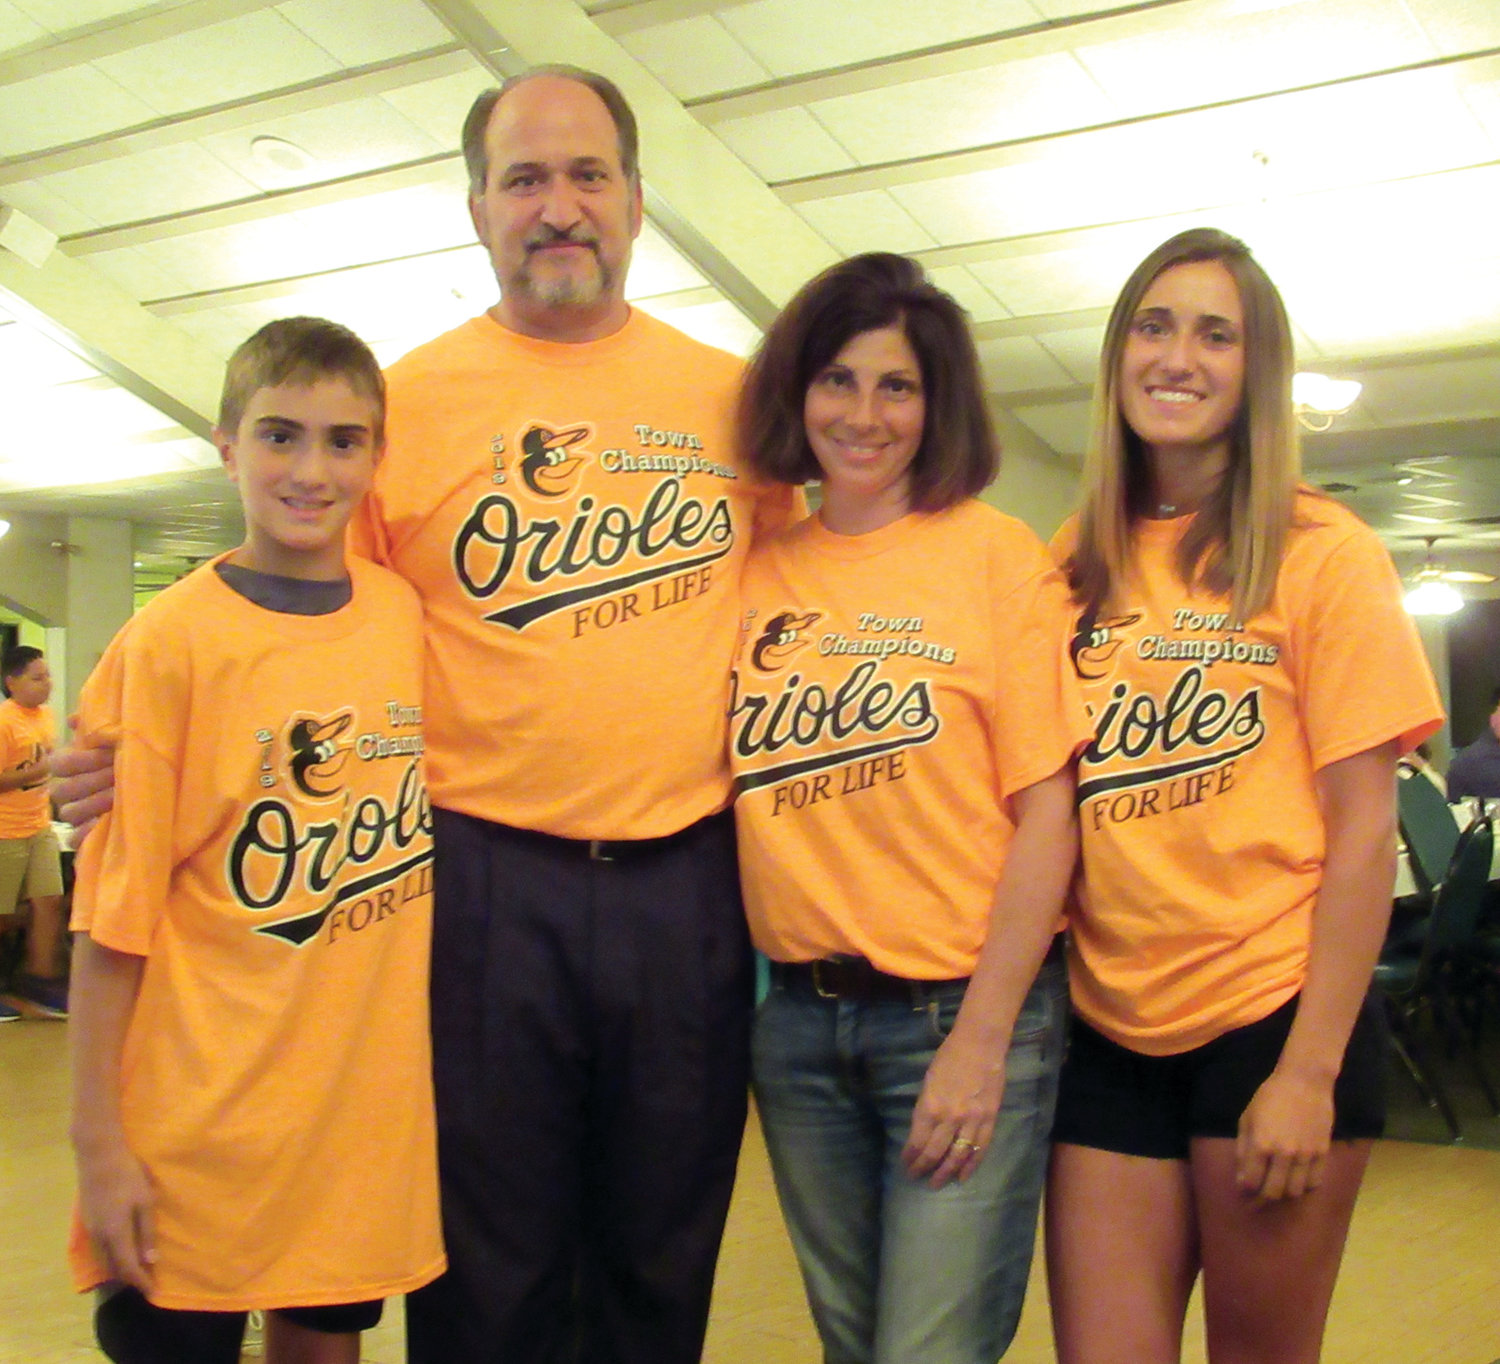 SPECIAL SENDOFF: Former Johnston High School sports standout Lauren Civetti (right) enjoyed a super special sendoff while helping her father's Lisi Construction-Johnston Lions Club-sponsored Town Champion Orioles bask in the spotlight at the JLL's annual awards banquet. Like the O's family, she sported an Orioles T-shirt and enjoyed the dinner at Wright's Farm in Burrillville. After the fun-filled event, Lauren and her parents, O's long-time coach and Councilman Robert Civetti and mother Carol loaded up their car and headed for Towson, Md. where Lauren began practicing for her sophomore season with the highly-regarded NCAA Division I Towson State University women's fast-pitch softball team. Chris Civetti (left) was also honored at the dinner as a member of the 2019 state champion Junior Division All-Stars.